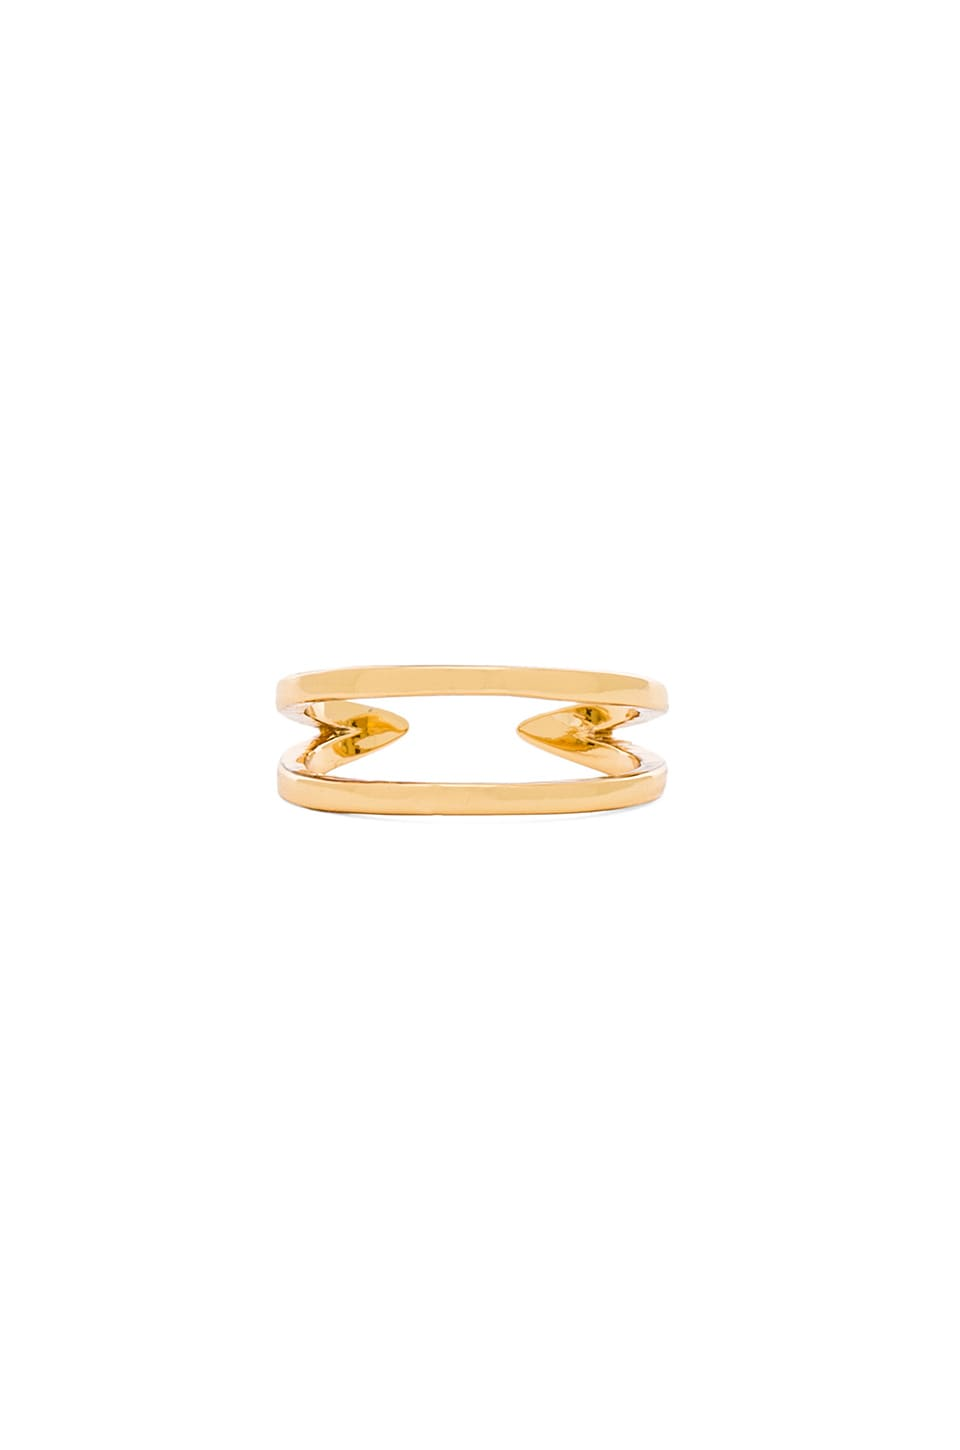 gorjana Tira Cuff Ring in Gold